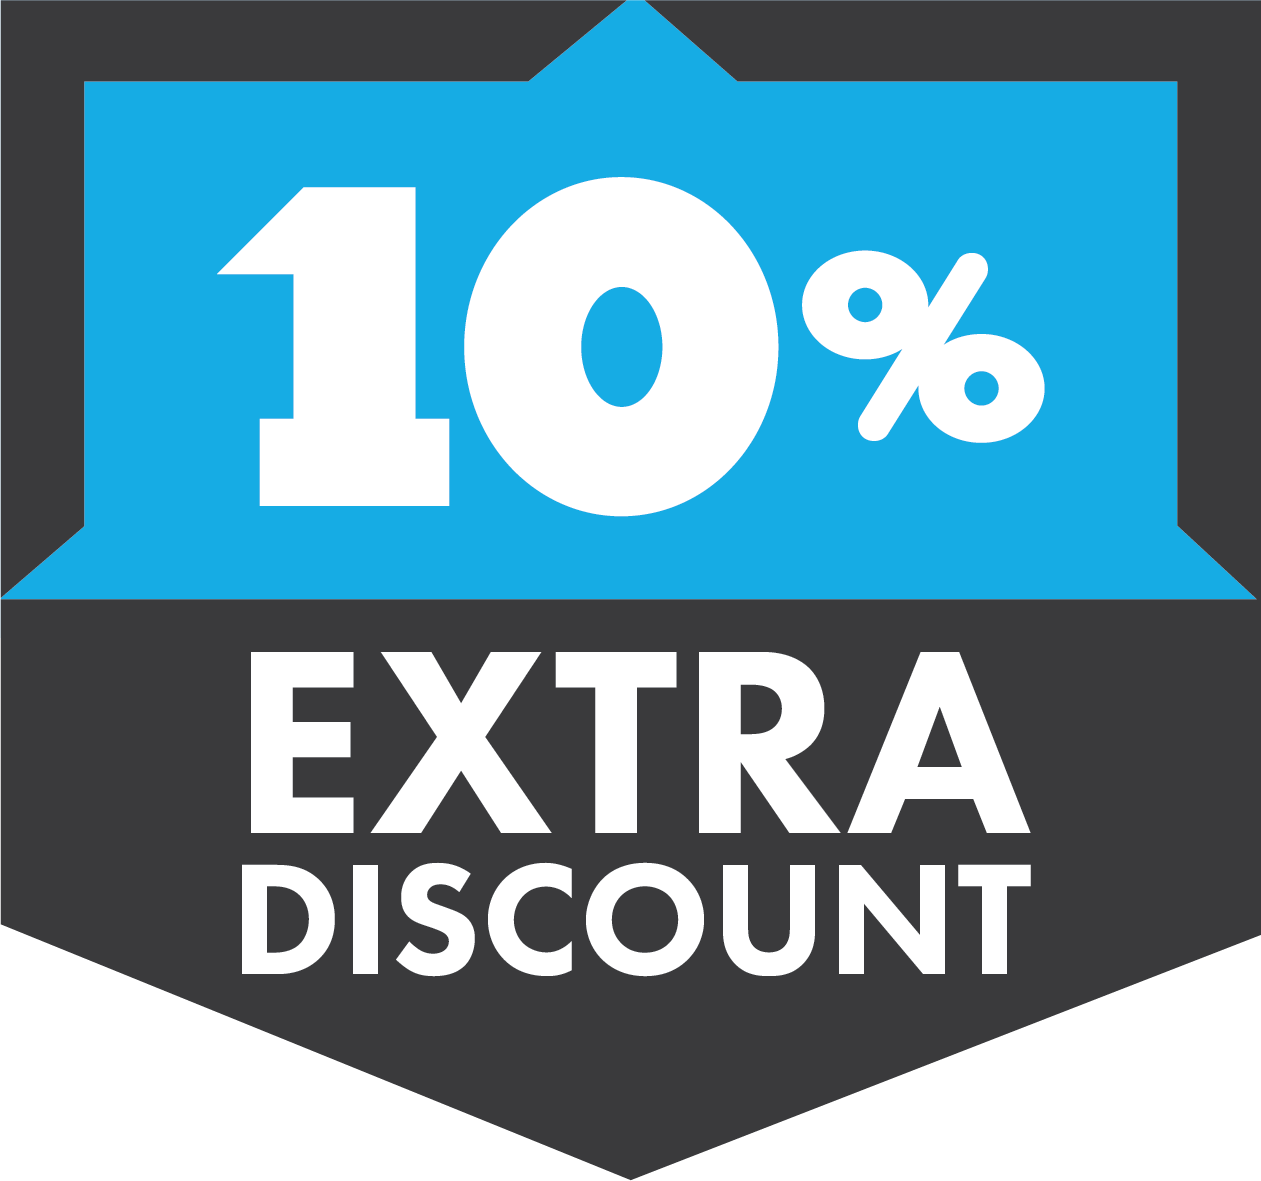 10 Discount Offer Badge - University of Canberra Courses in Melbourne - GBCA College